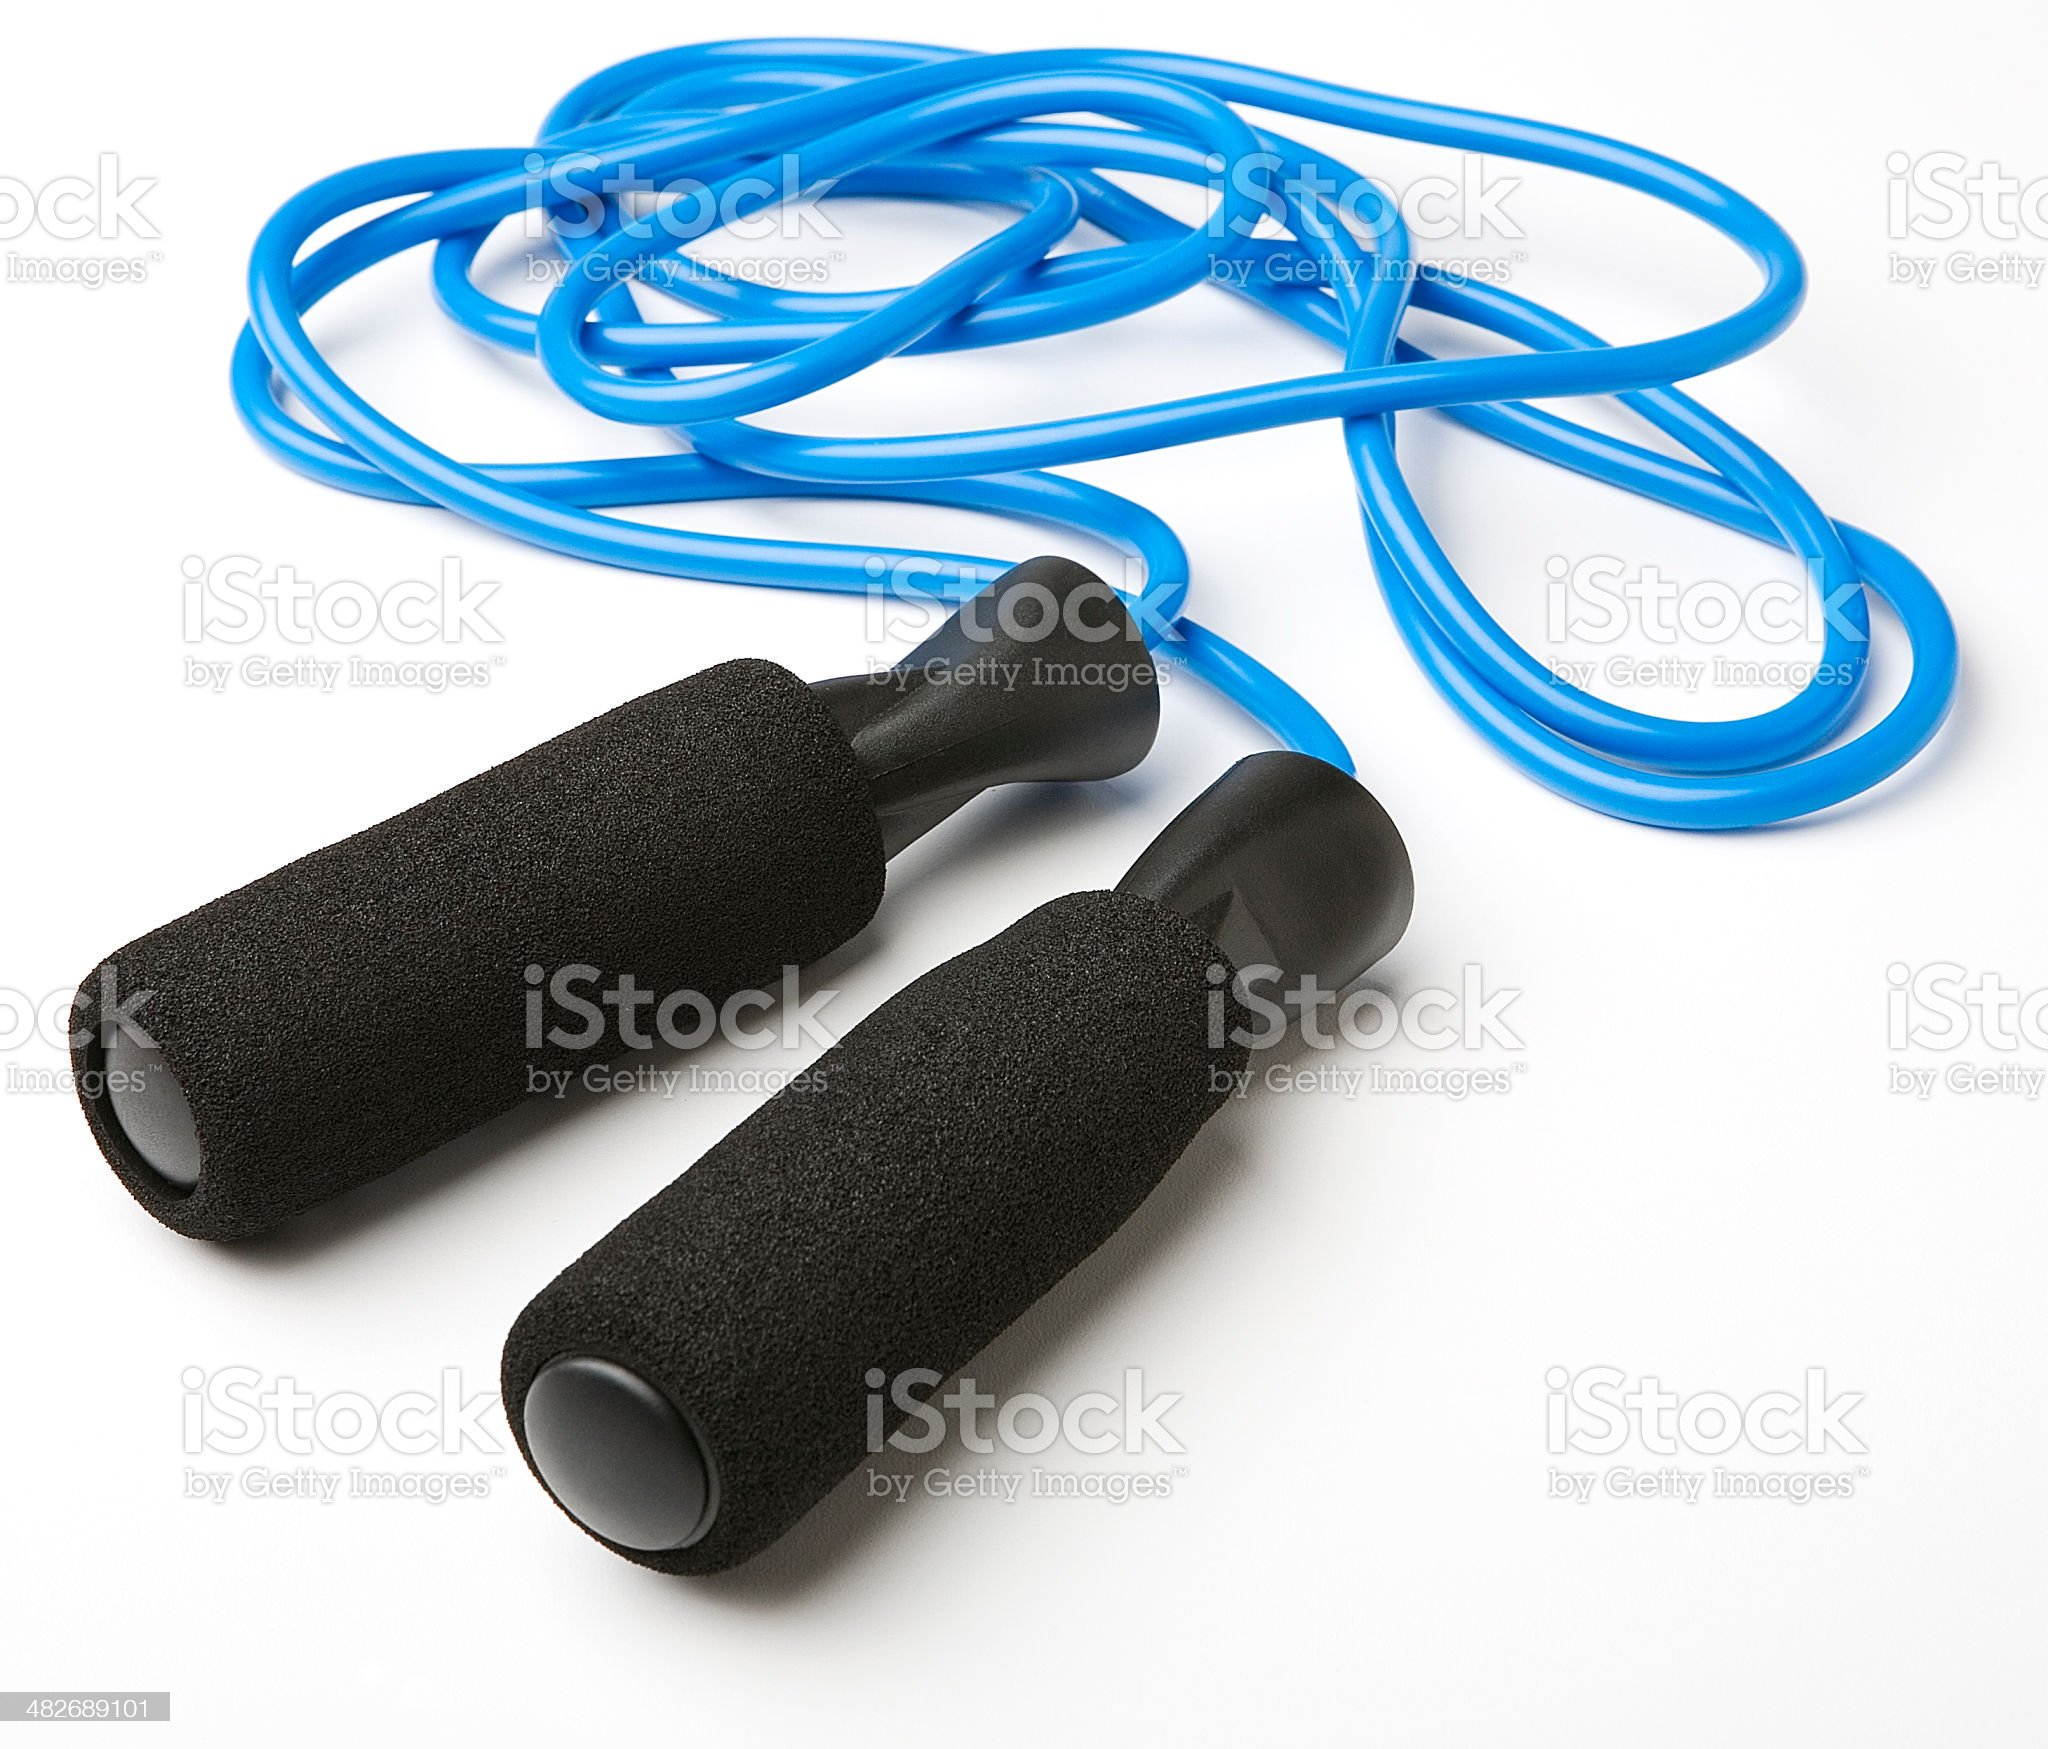 blue jump rope royalty-free stock photo